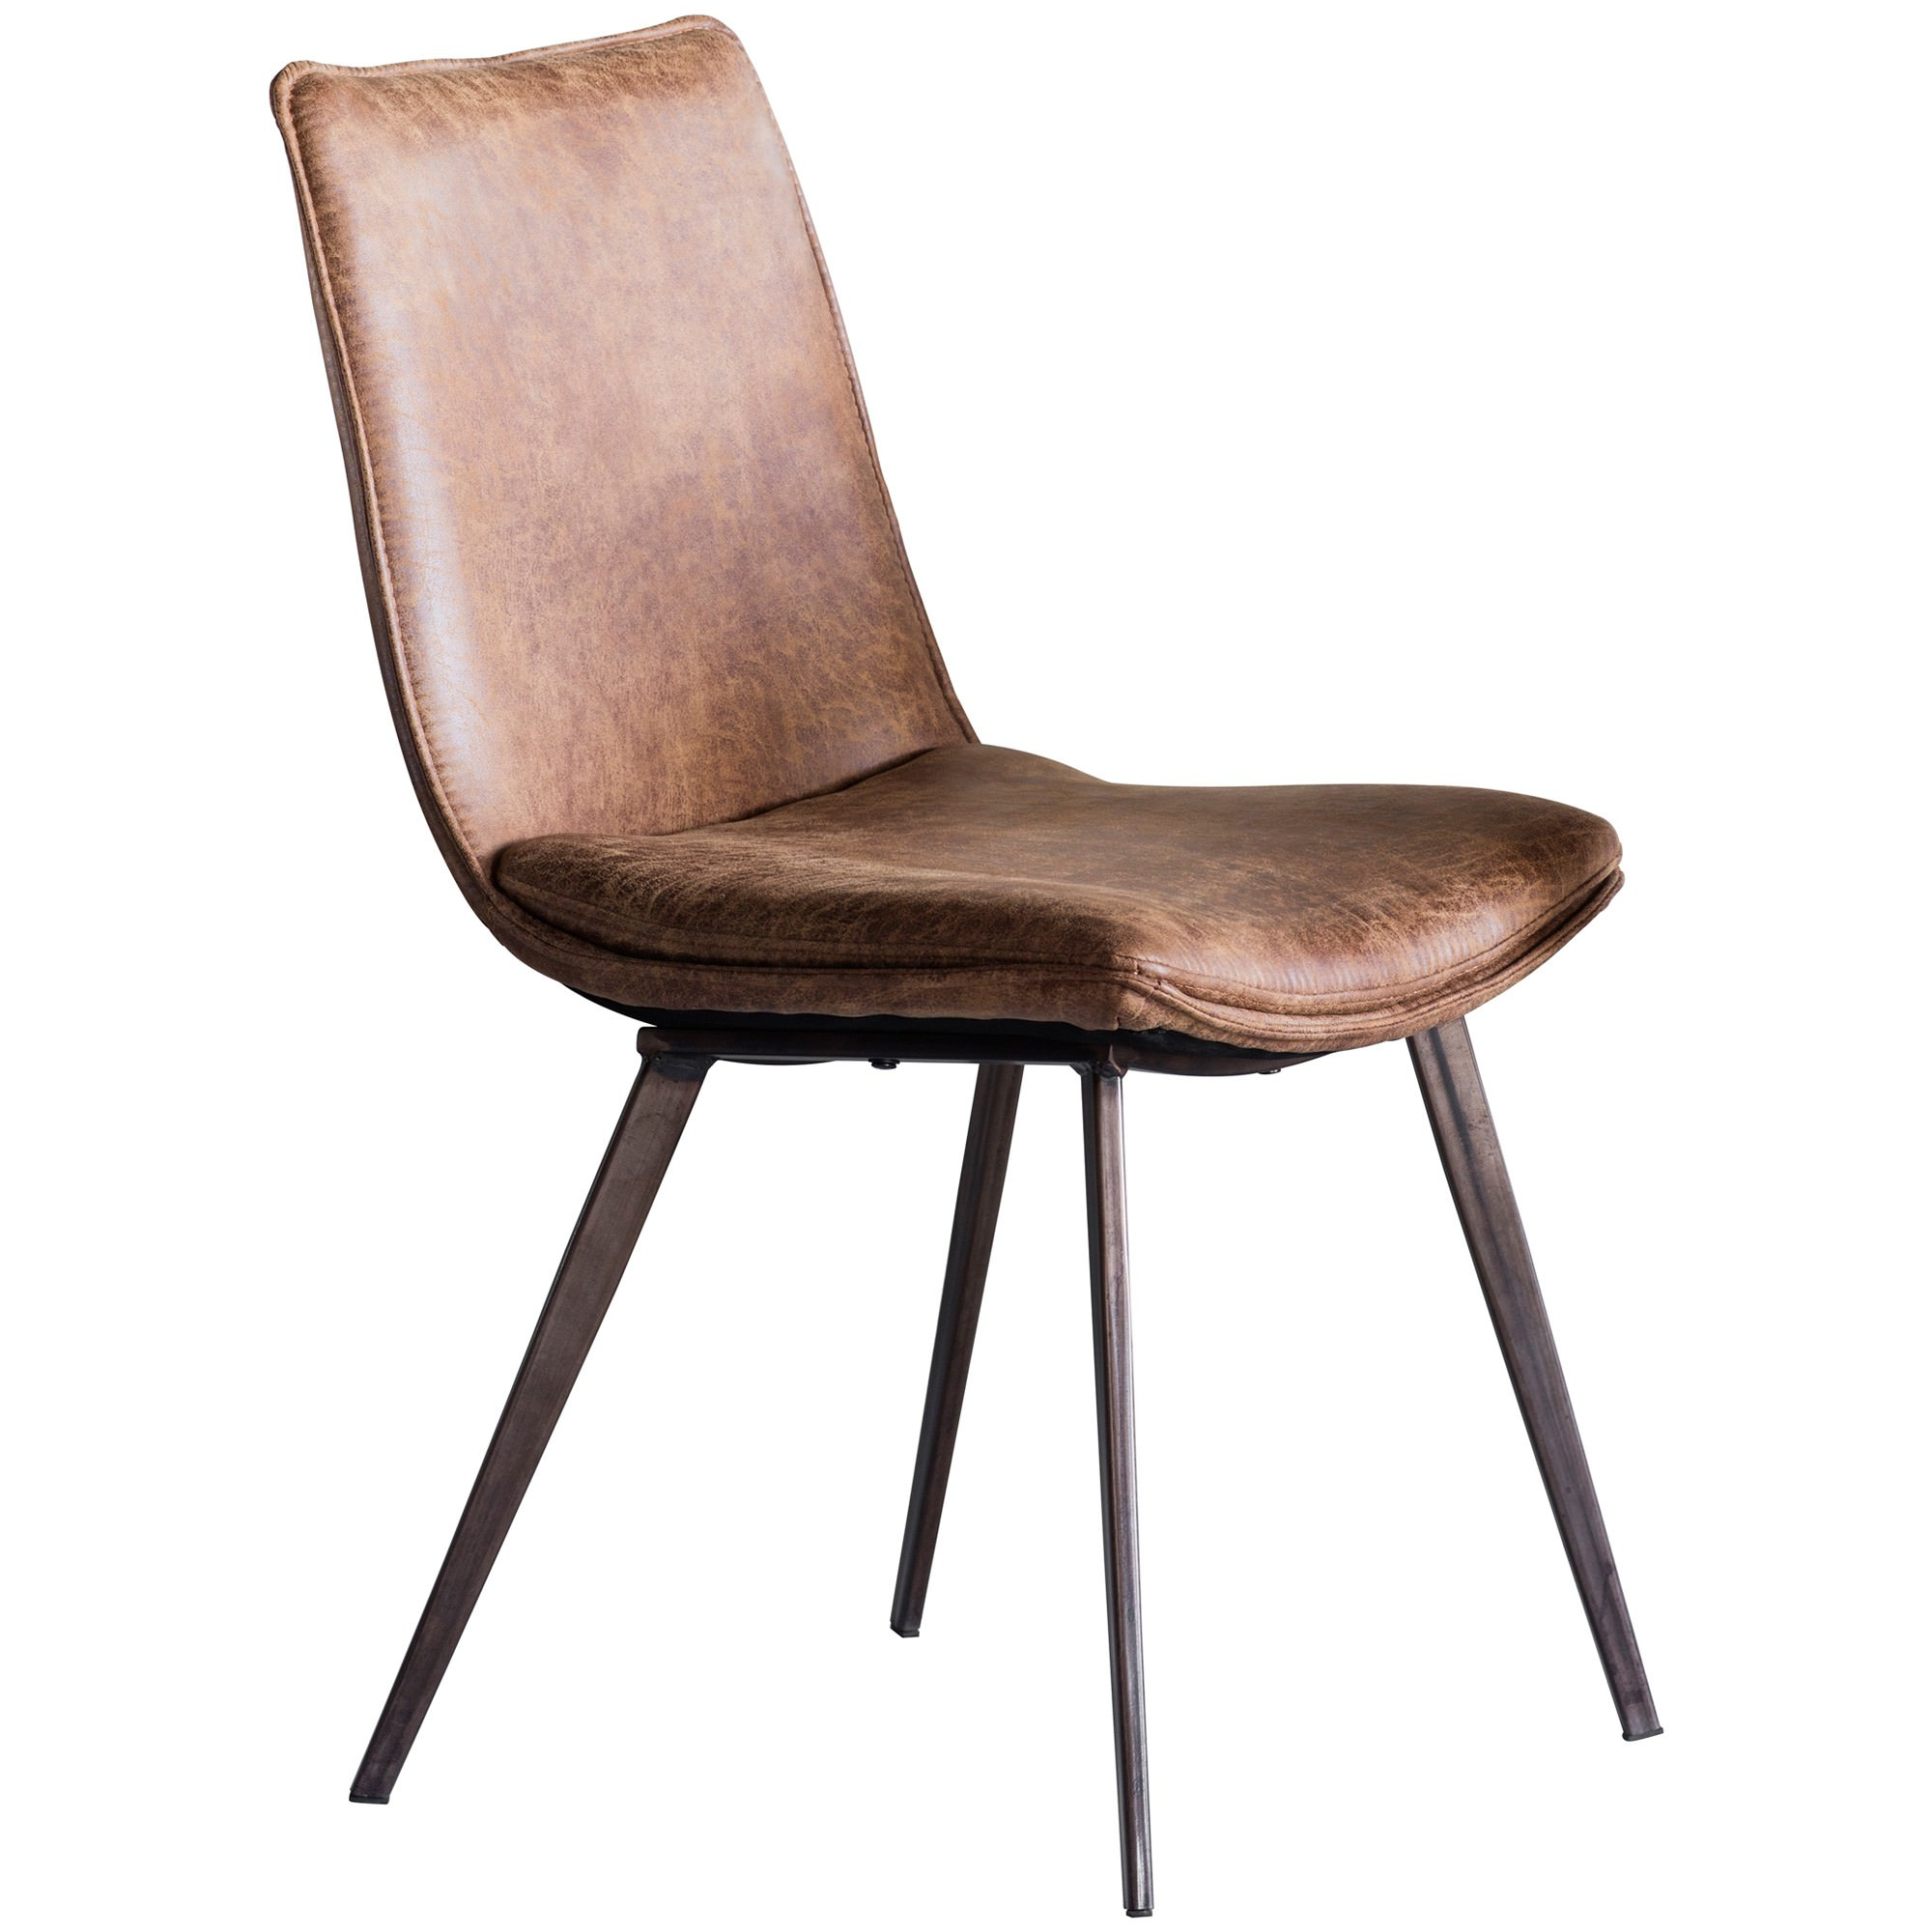 Henrik Faux Leather Dining Chair, Set of 20, Tan